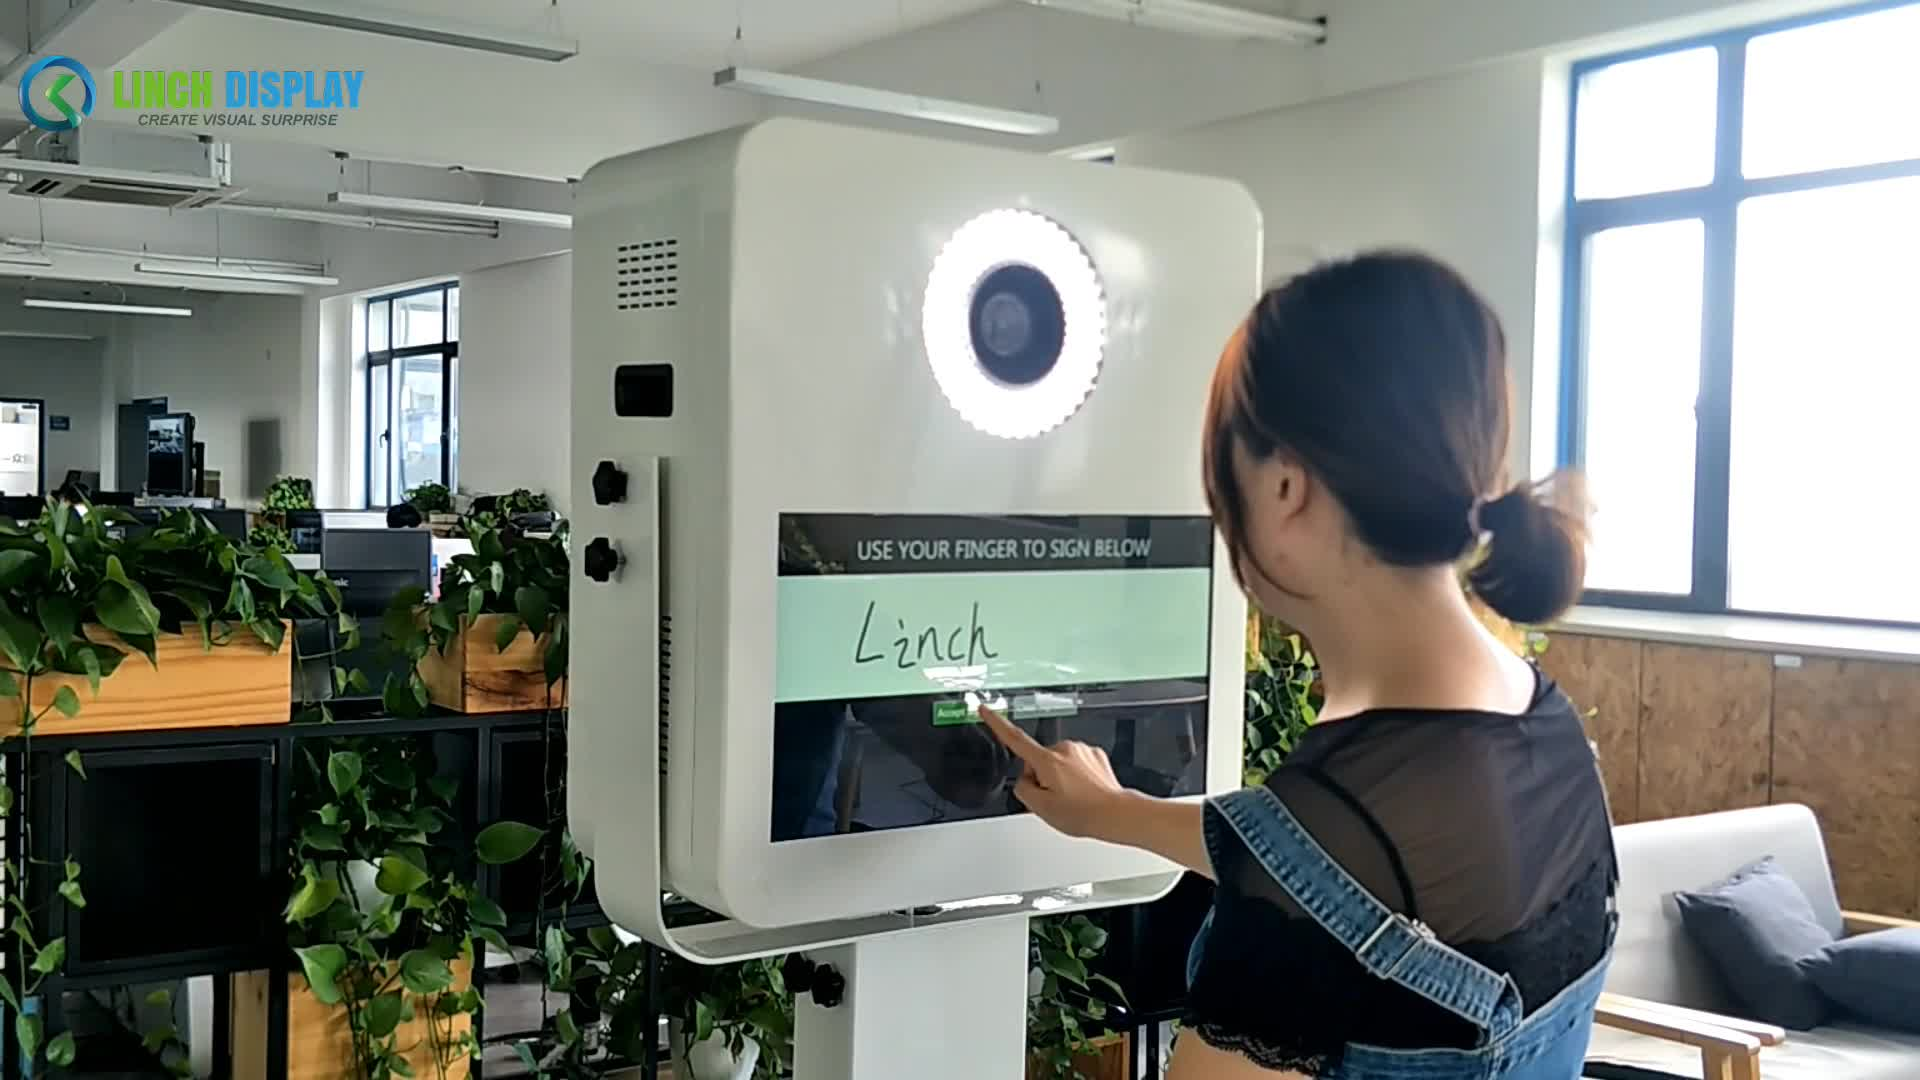 Diy Instant 3d Portable Photo Booth Machine - Buy 3d Portable Photo Booth  Machine,3d Portable Photo Booth Machine,3d Portable Photo Booth Machine